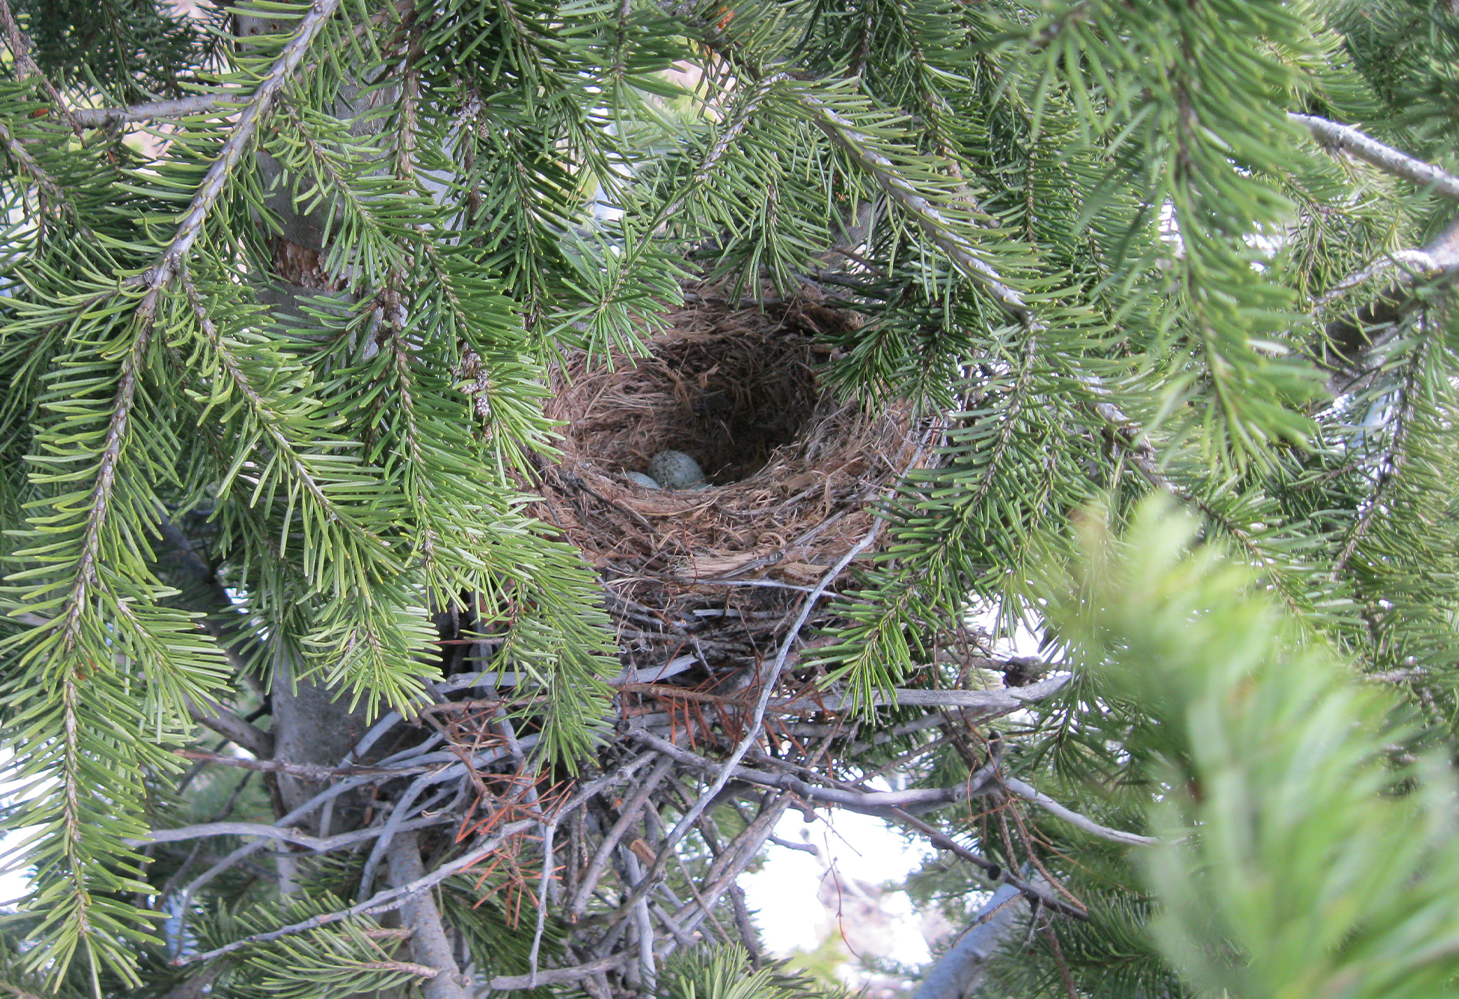 A bird nest sits in a pine tree with light blue eggs